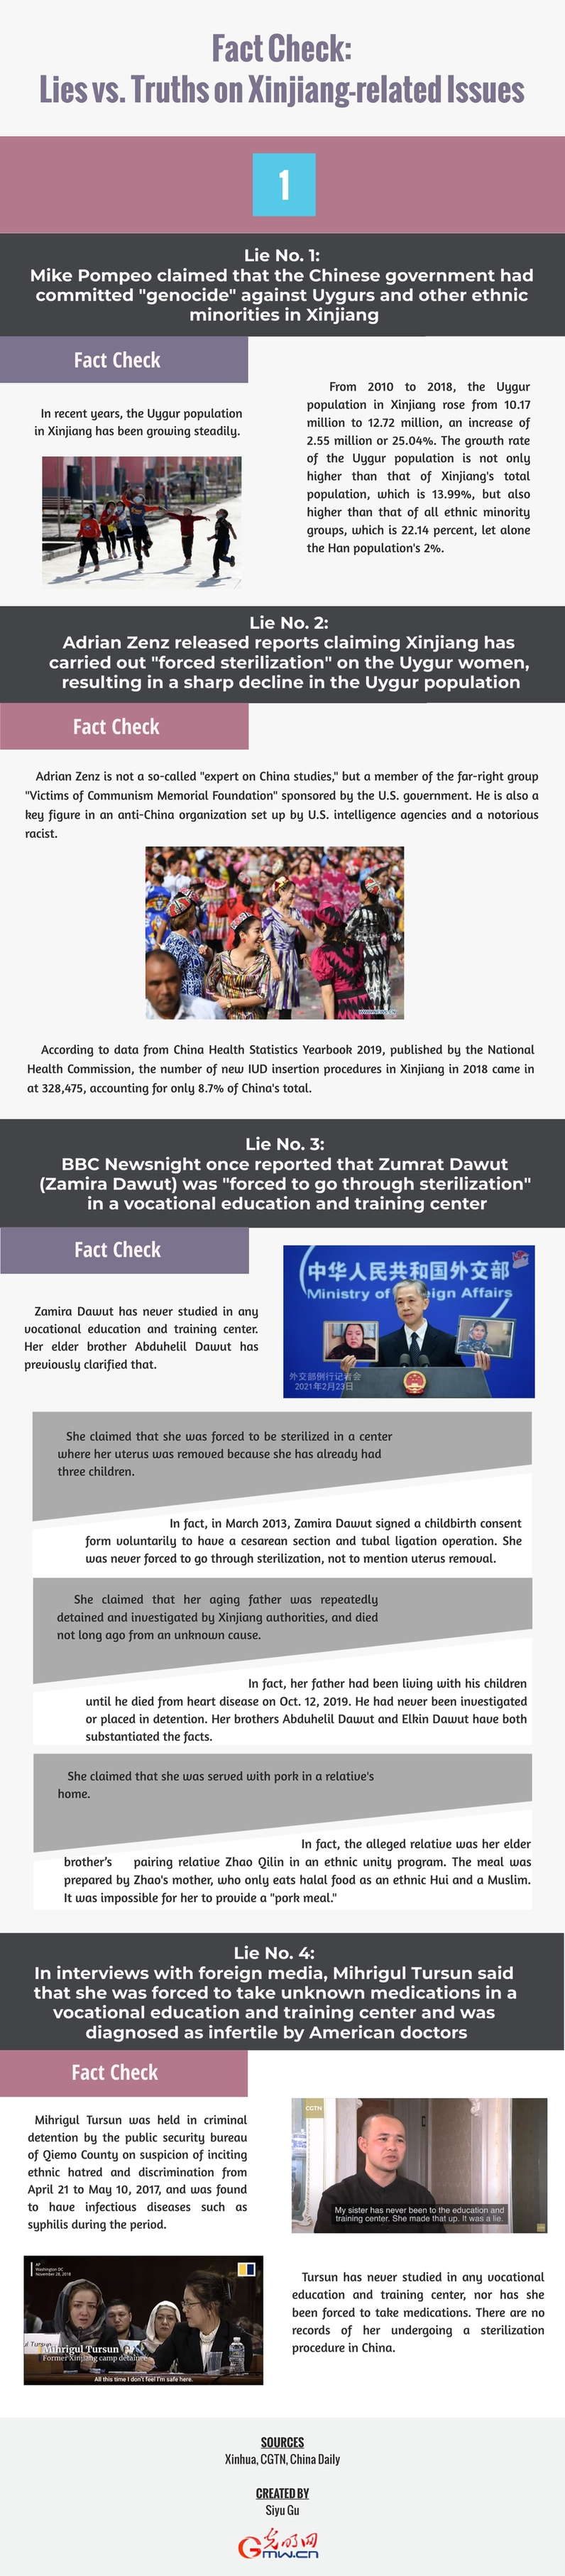 Infographics: Fact Check: Lies vs. Truths on Xinjiang-related Issues 1